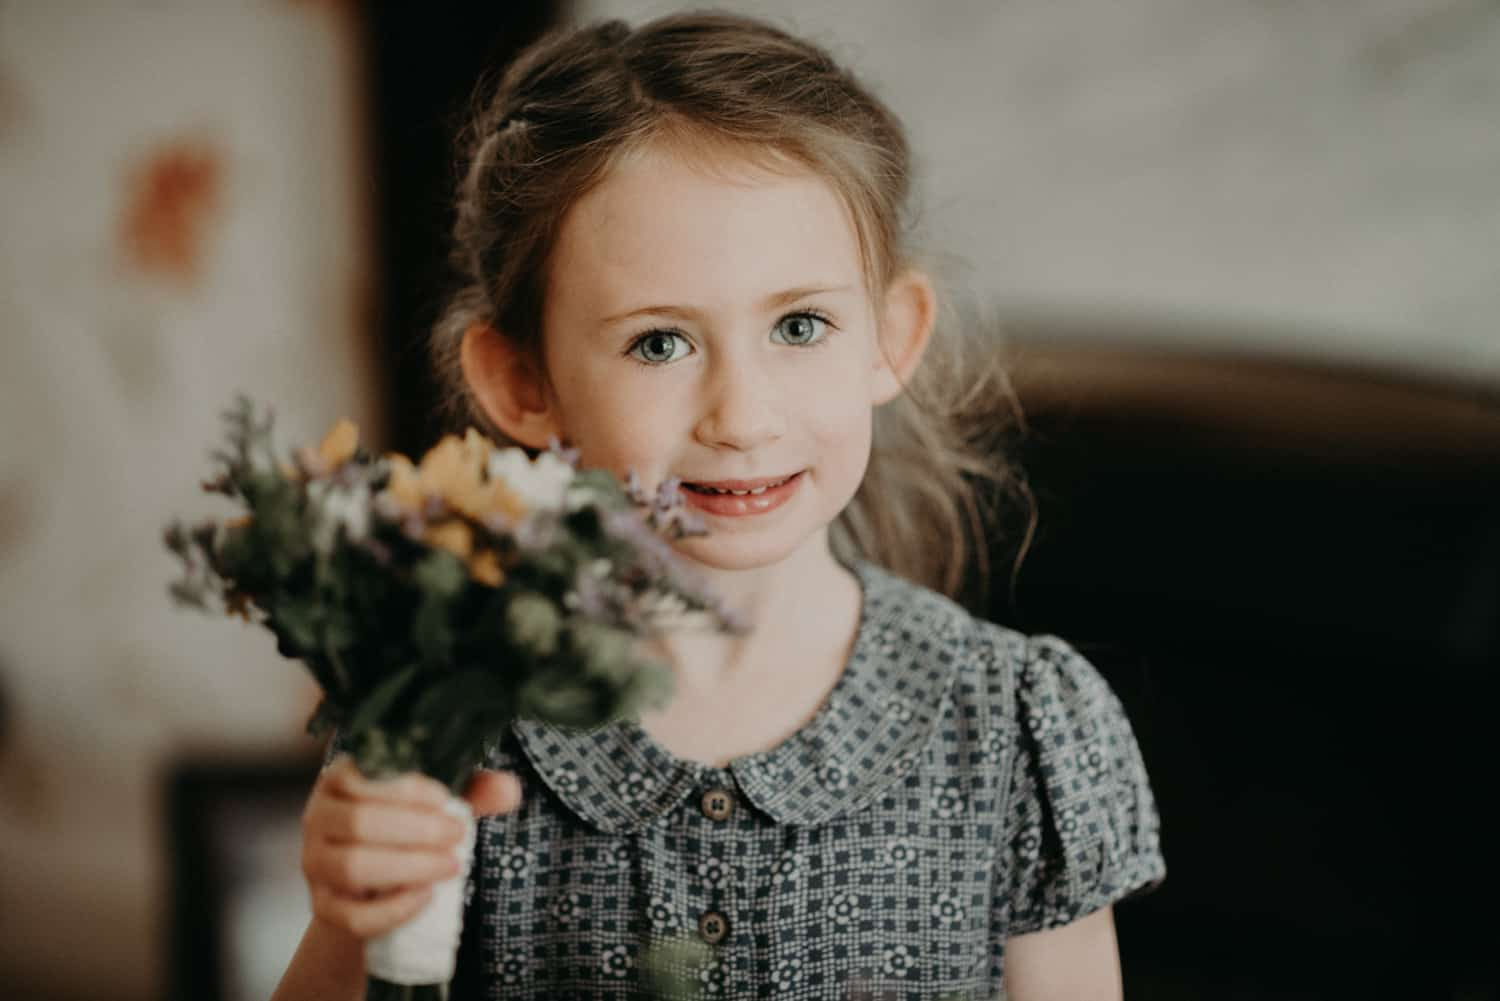 lovely flower girl portrait